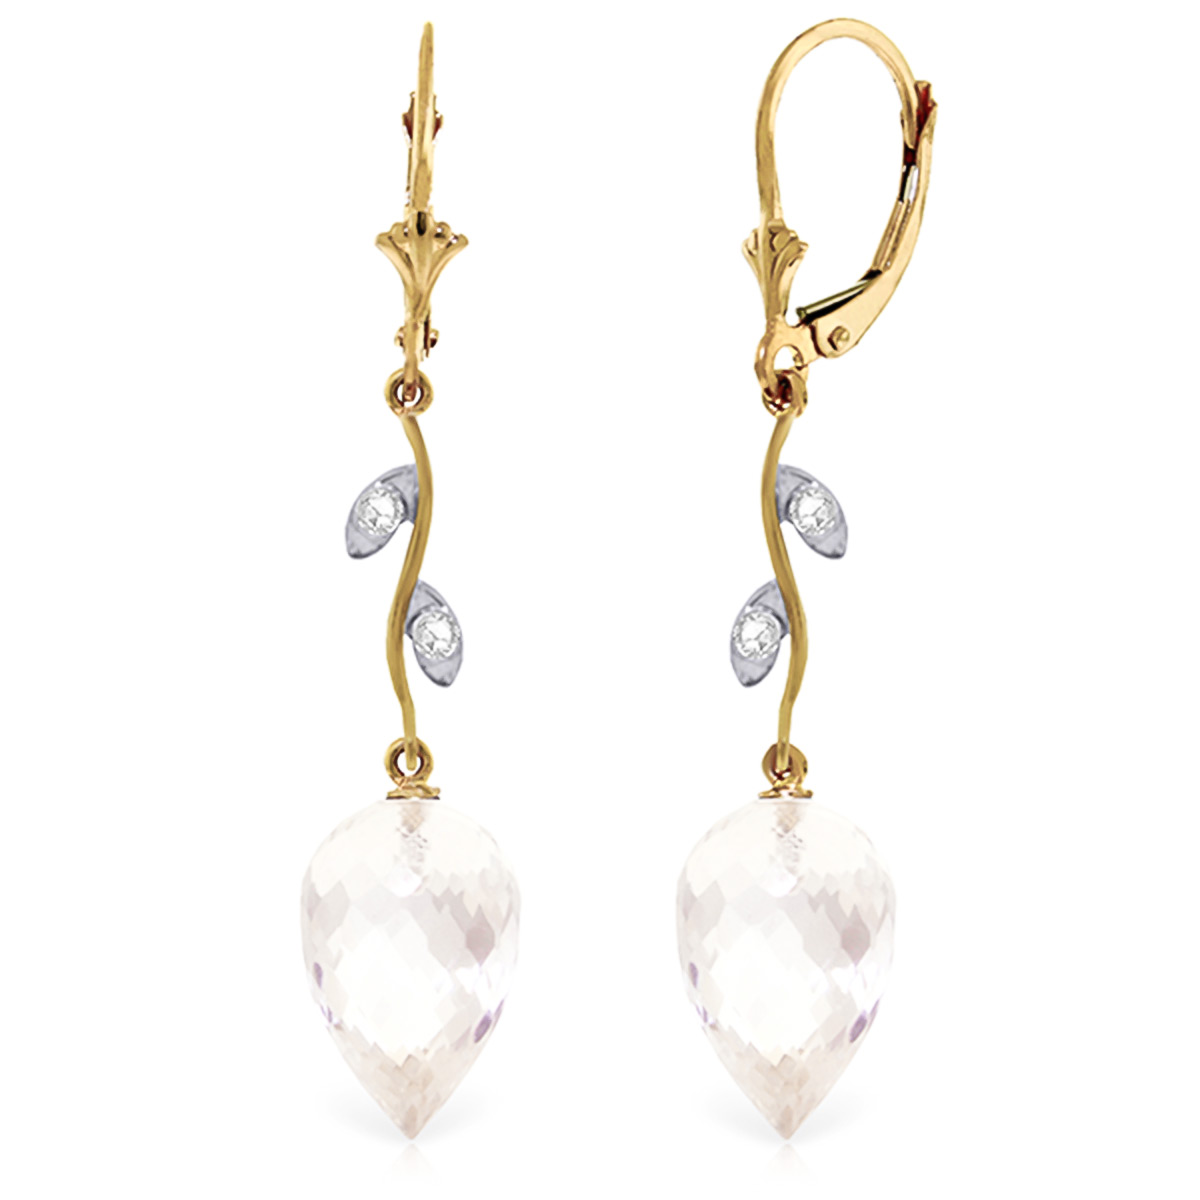 White Topaz Drop Earrings 24.52 ctw in 9ct Gold